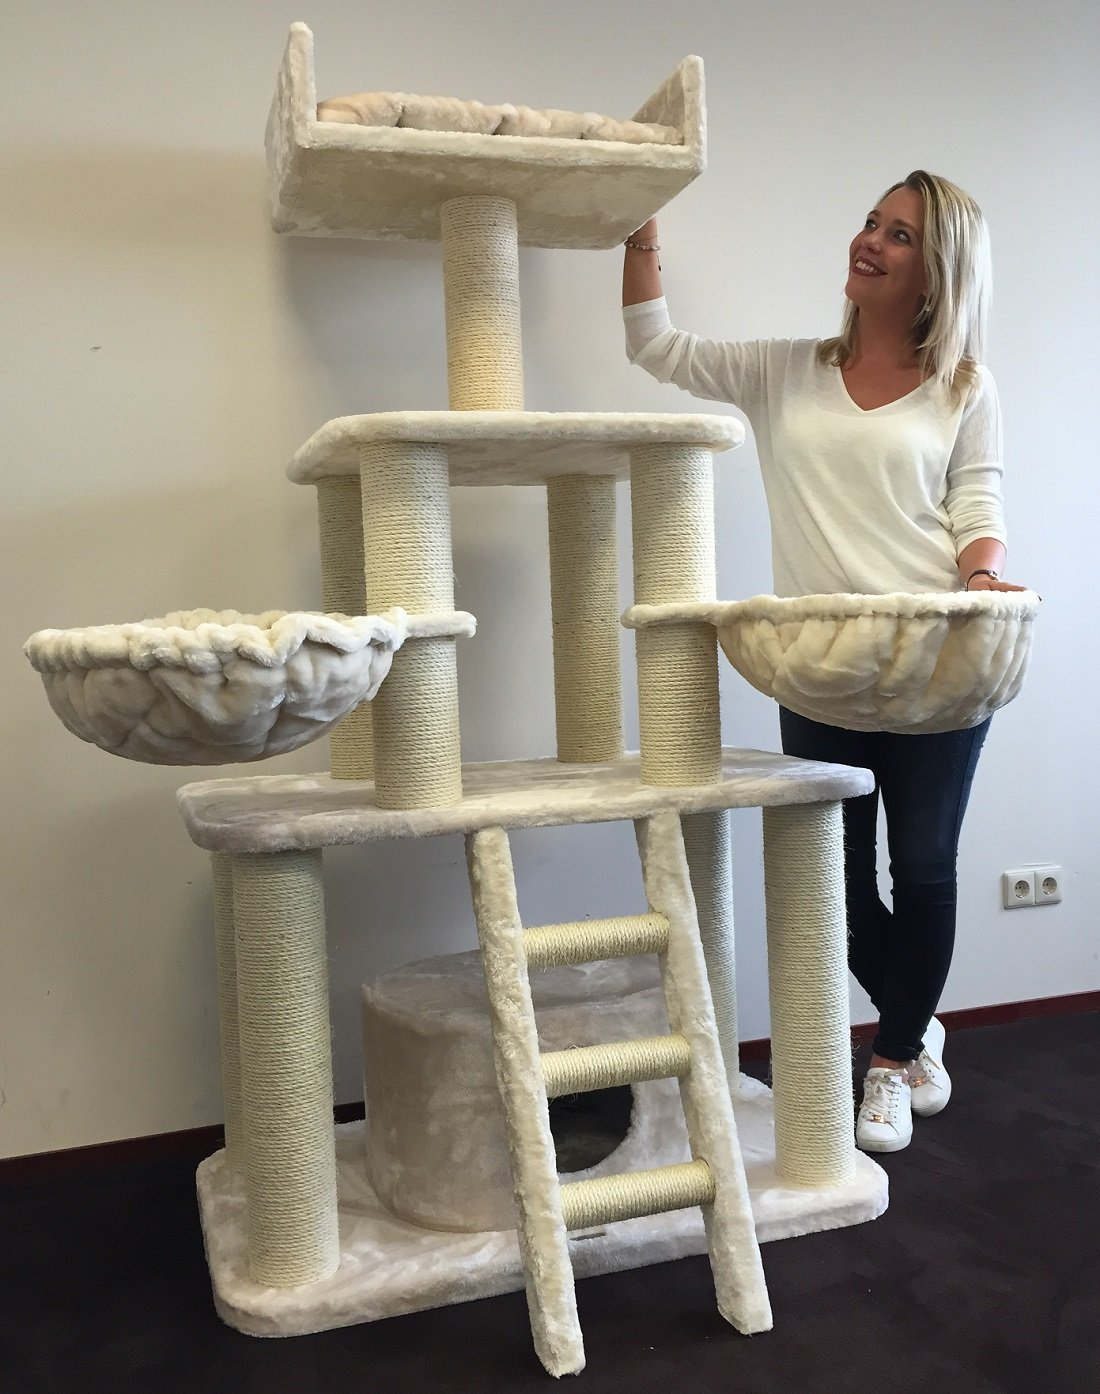 Cat Tree for Large Cats – Tiger Beige – 69 inch 137 lbs 5 inch Ø poles – Total size 69x39x24 inch – Cat Scratcher scratching post activity center Cat Trees for large cats. Quality product from Cat Tre